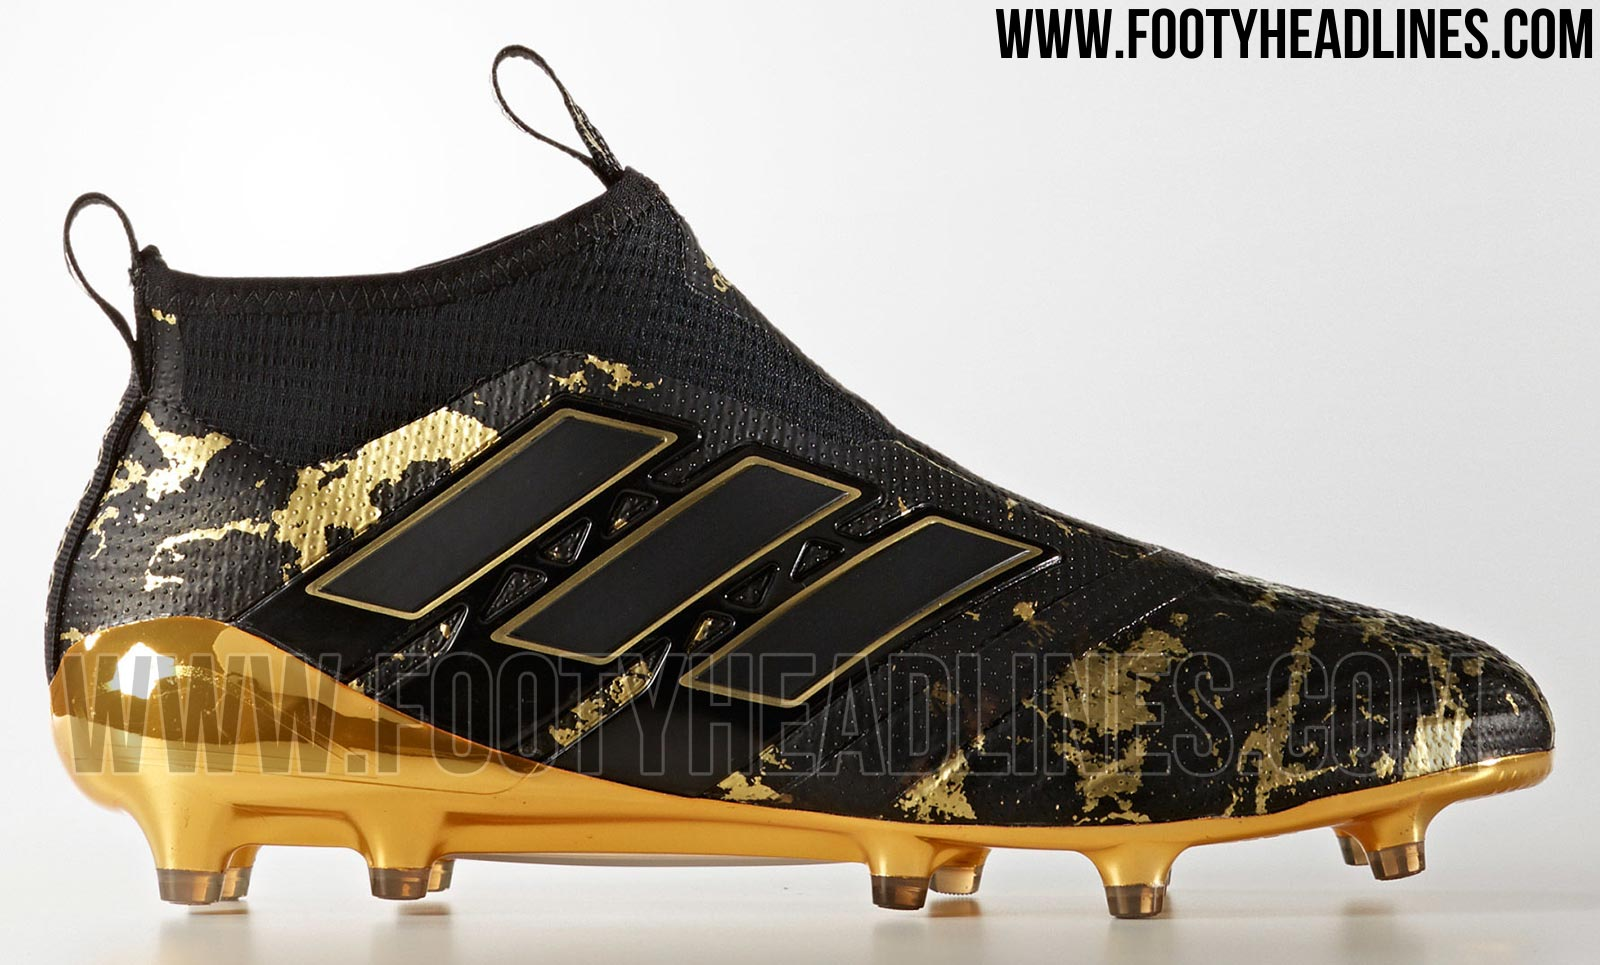 adidas ace 17 purecontrol paul pogba signature boots. Black Bedroom Furniture Sets. Home Design Ideas